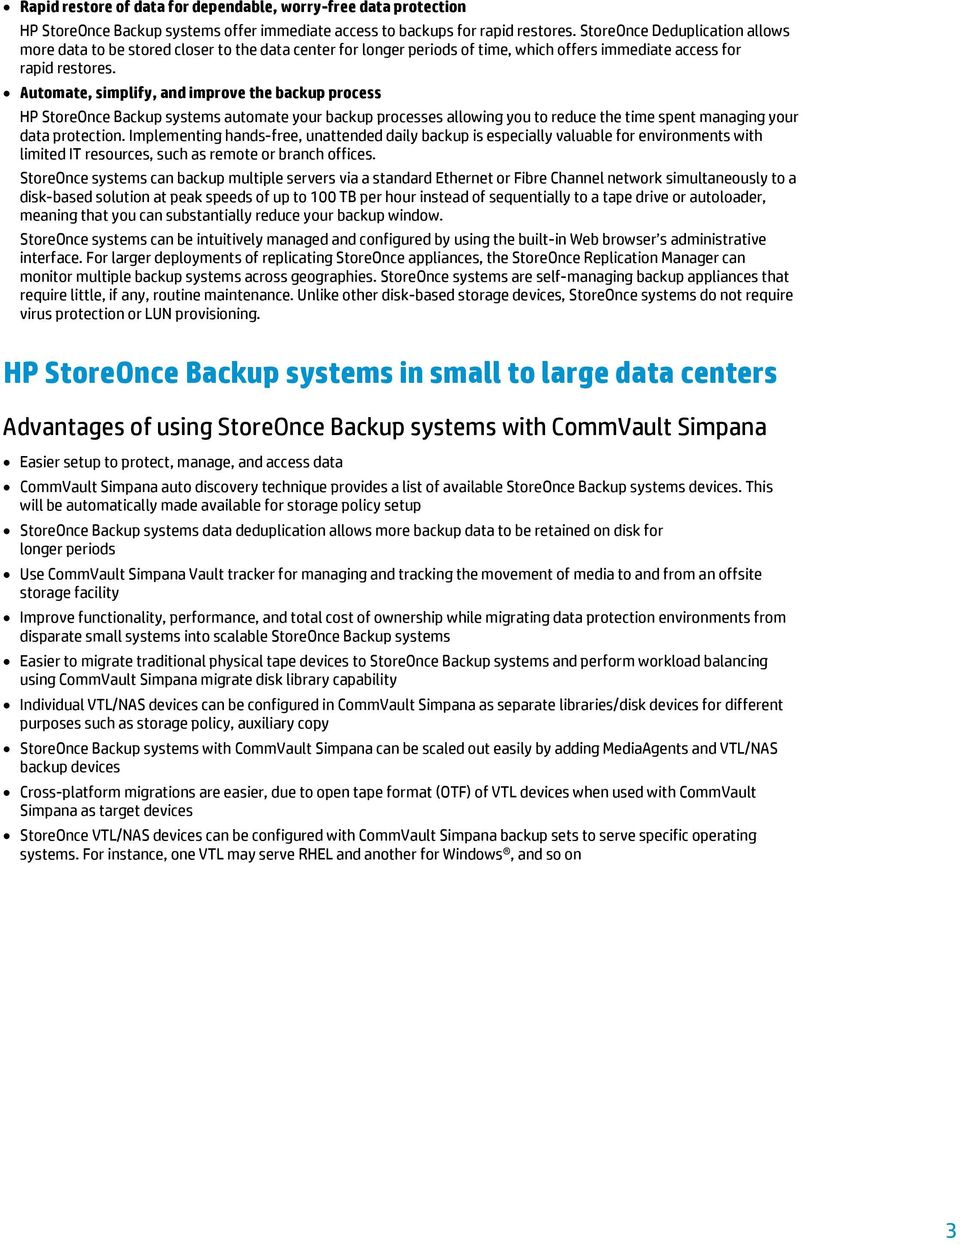 Automate, simplify, and improve the backup process HP StoreOnce Backup systems automate your backup processes allowing you to reduce the time spent managing your data protection.